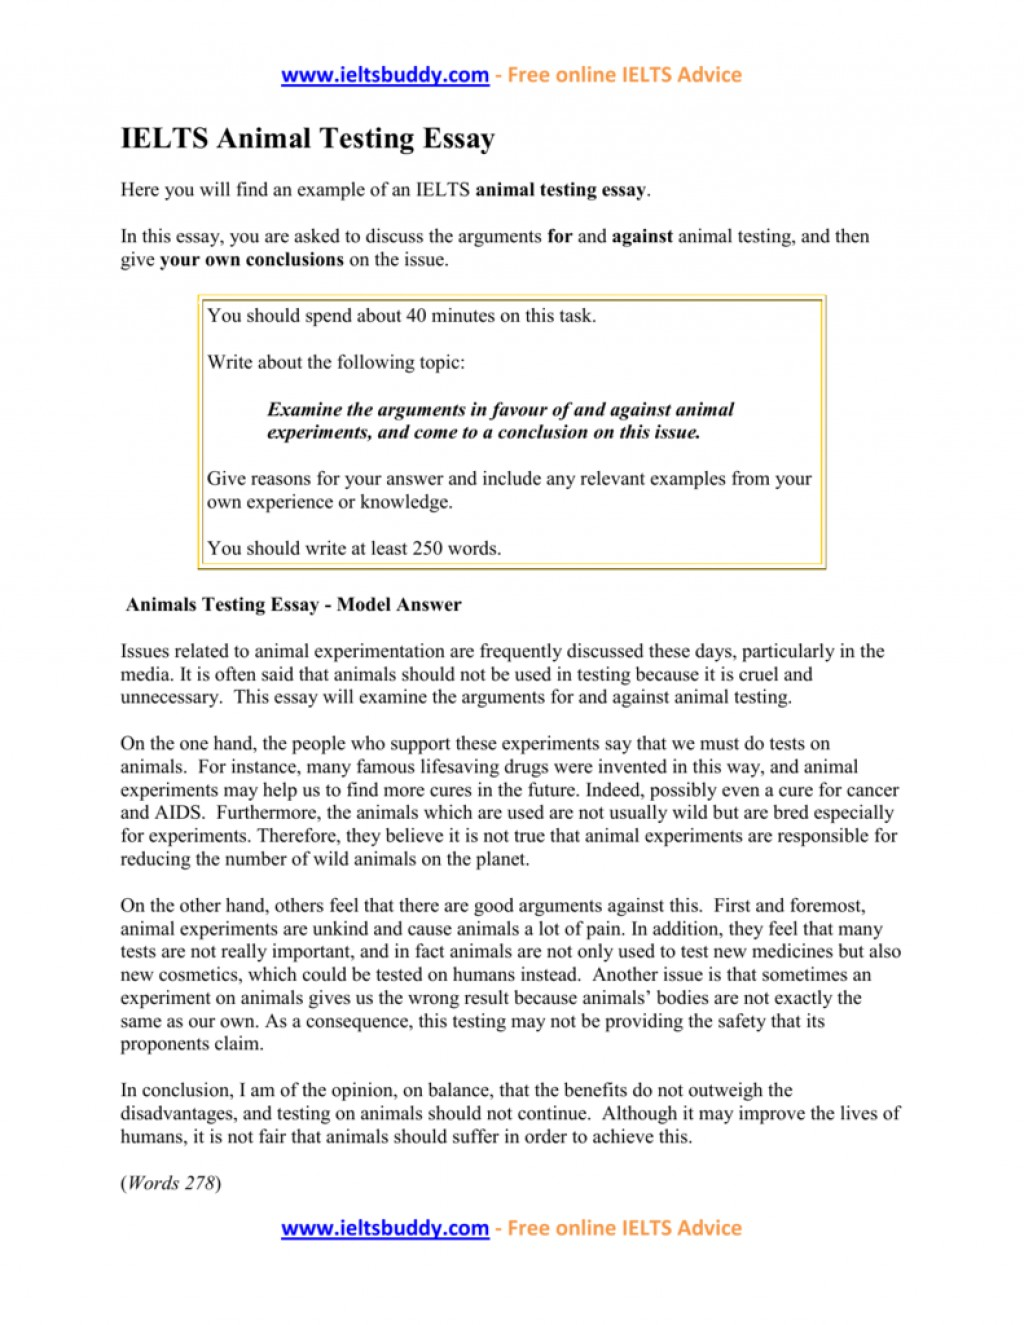 003 Against Animal Testing Essay Example 008917896 1 Imposing Introduction Persuasive Titles Large